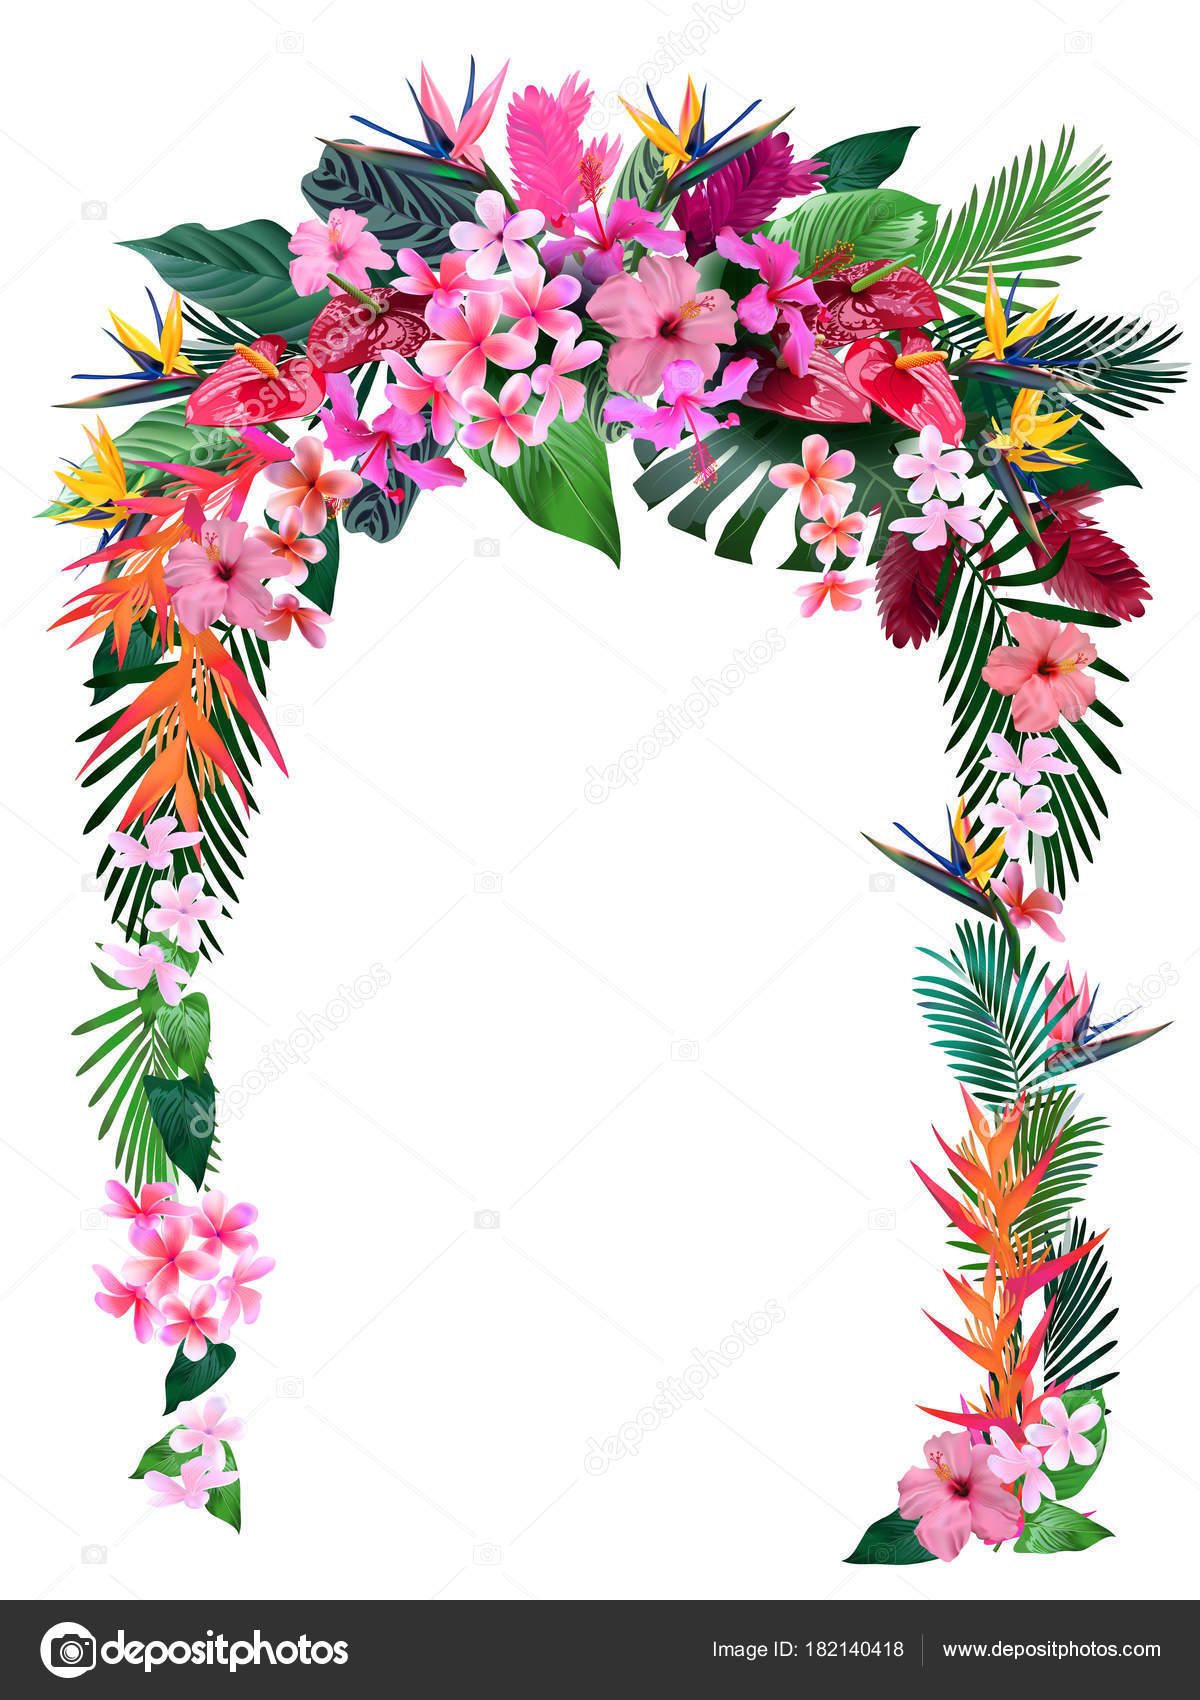 Wedding arch tropical flowers design wedding greetings wedding wedding arch tropical flowers design wedding greetings wedding invitations stock vector m4hsunfo Choice Image